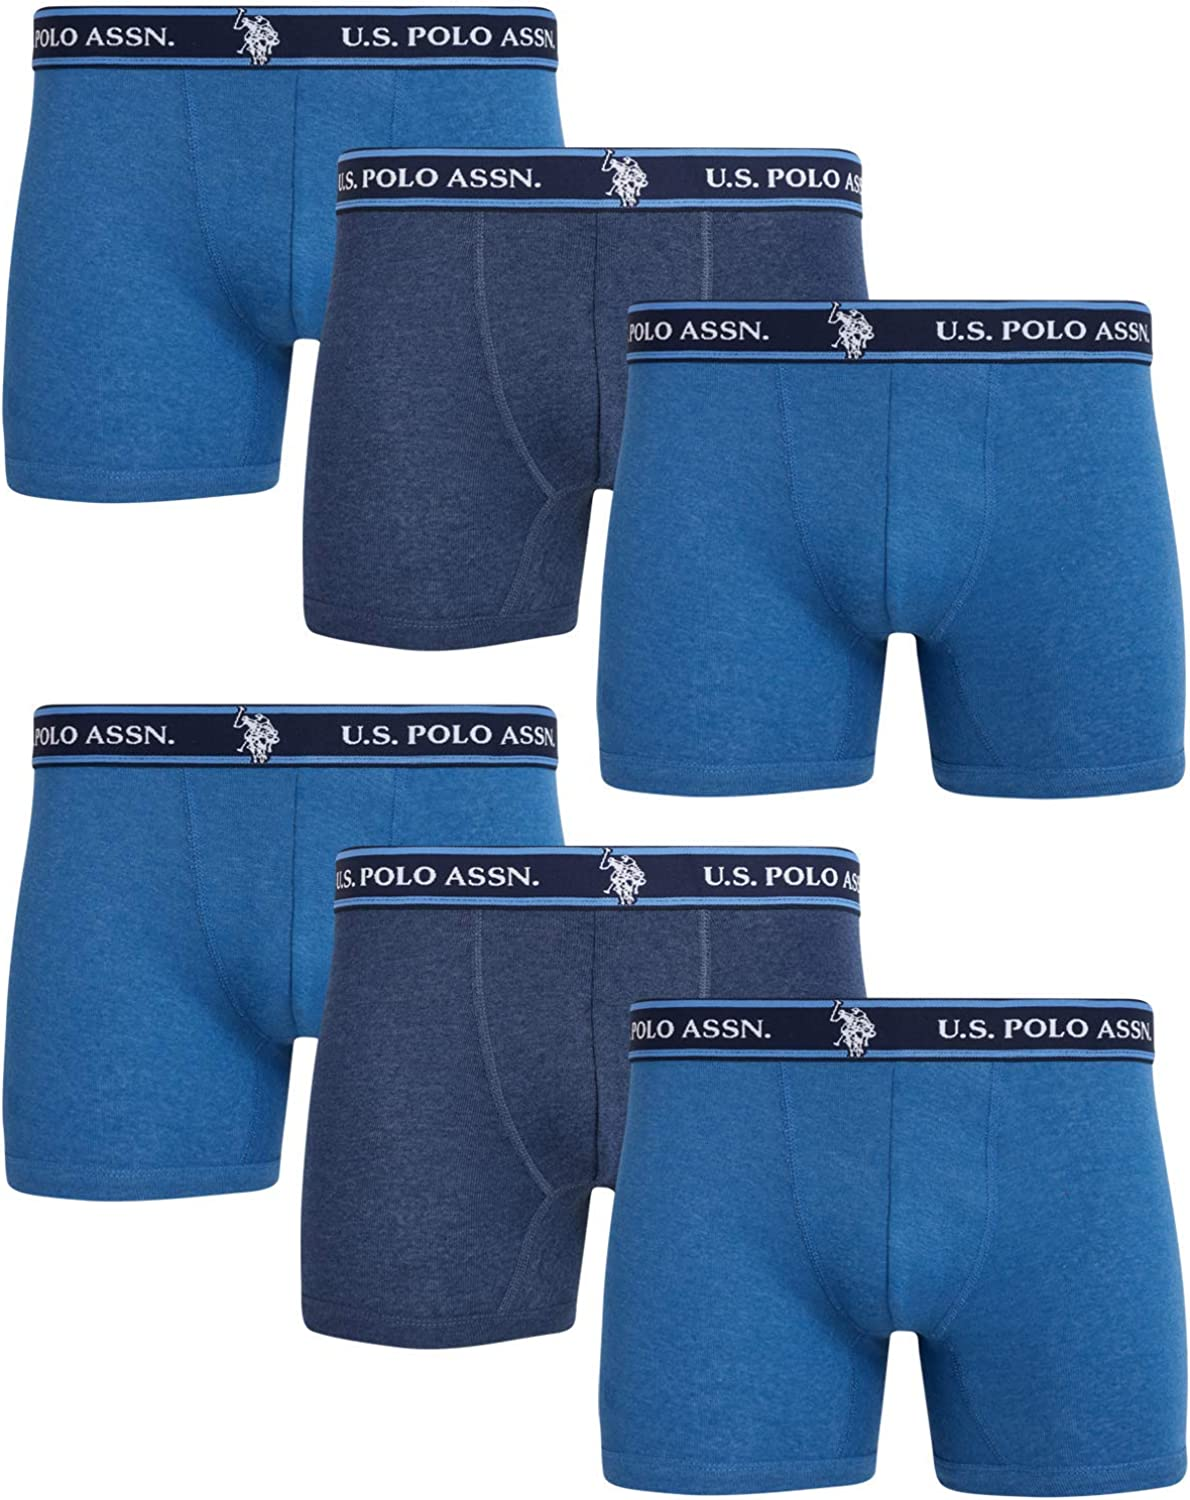 U.S. Polo Assn. Men's Cotton No Fly Boxer Briefs with Comfort Pouch (6 Pack)